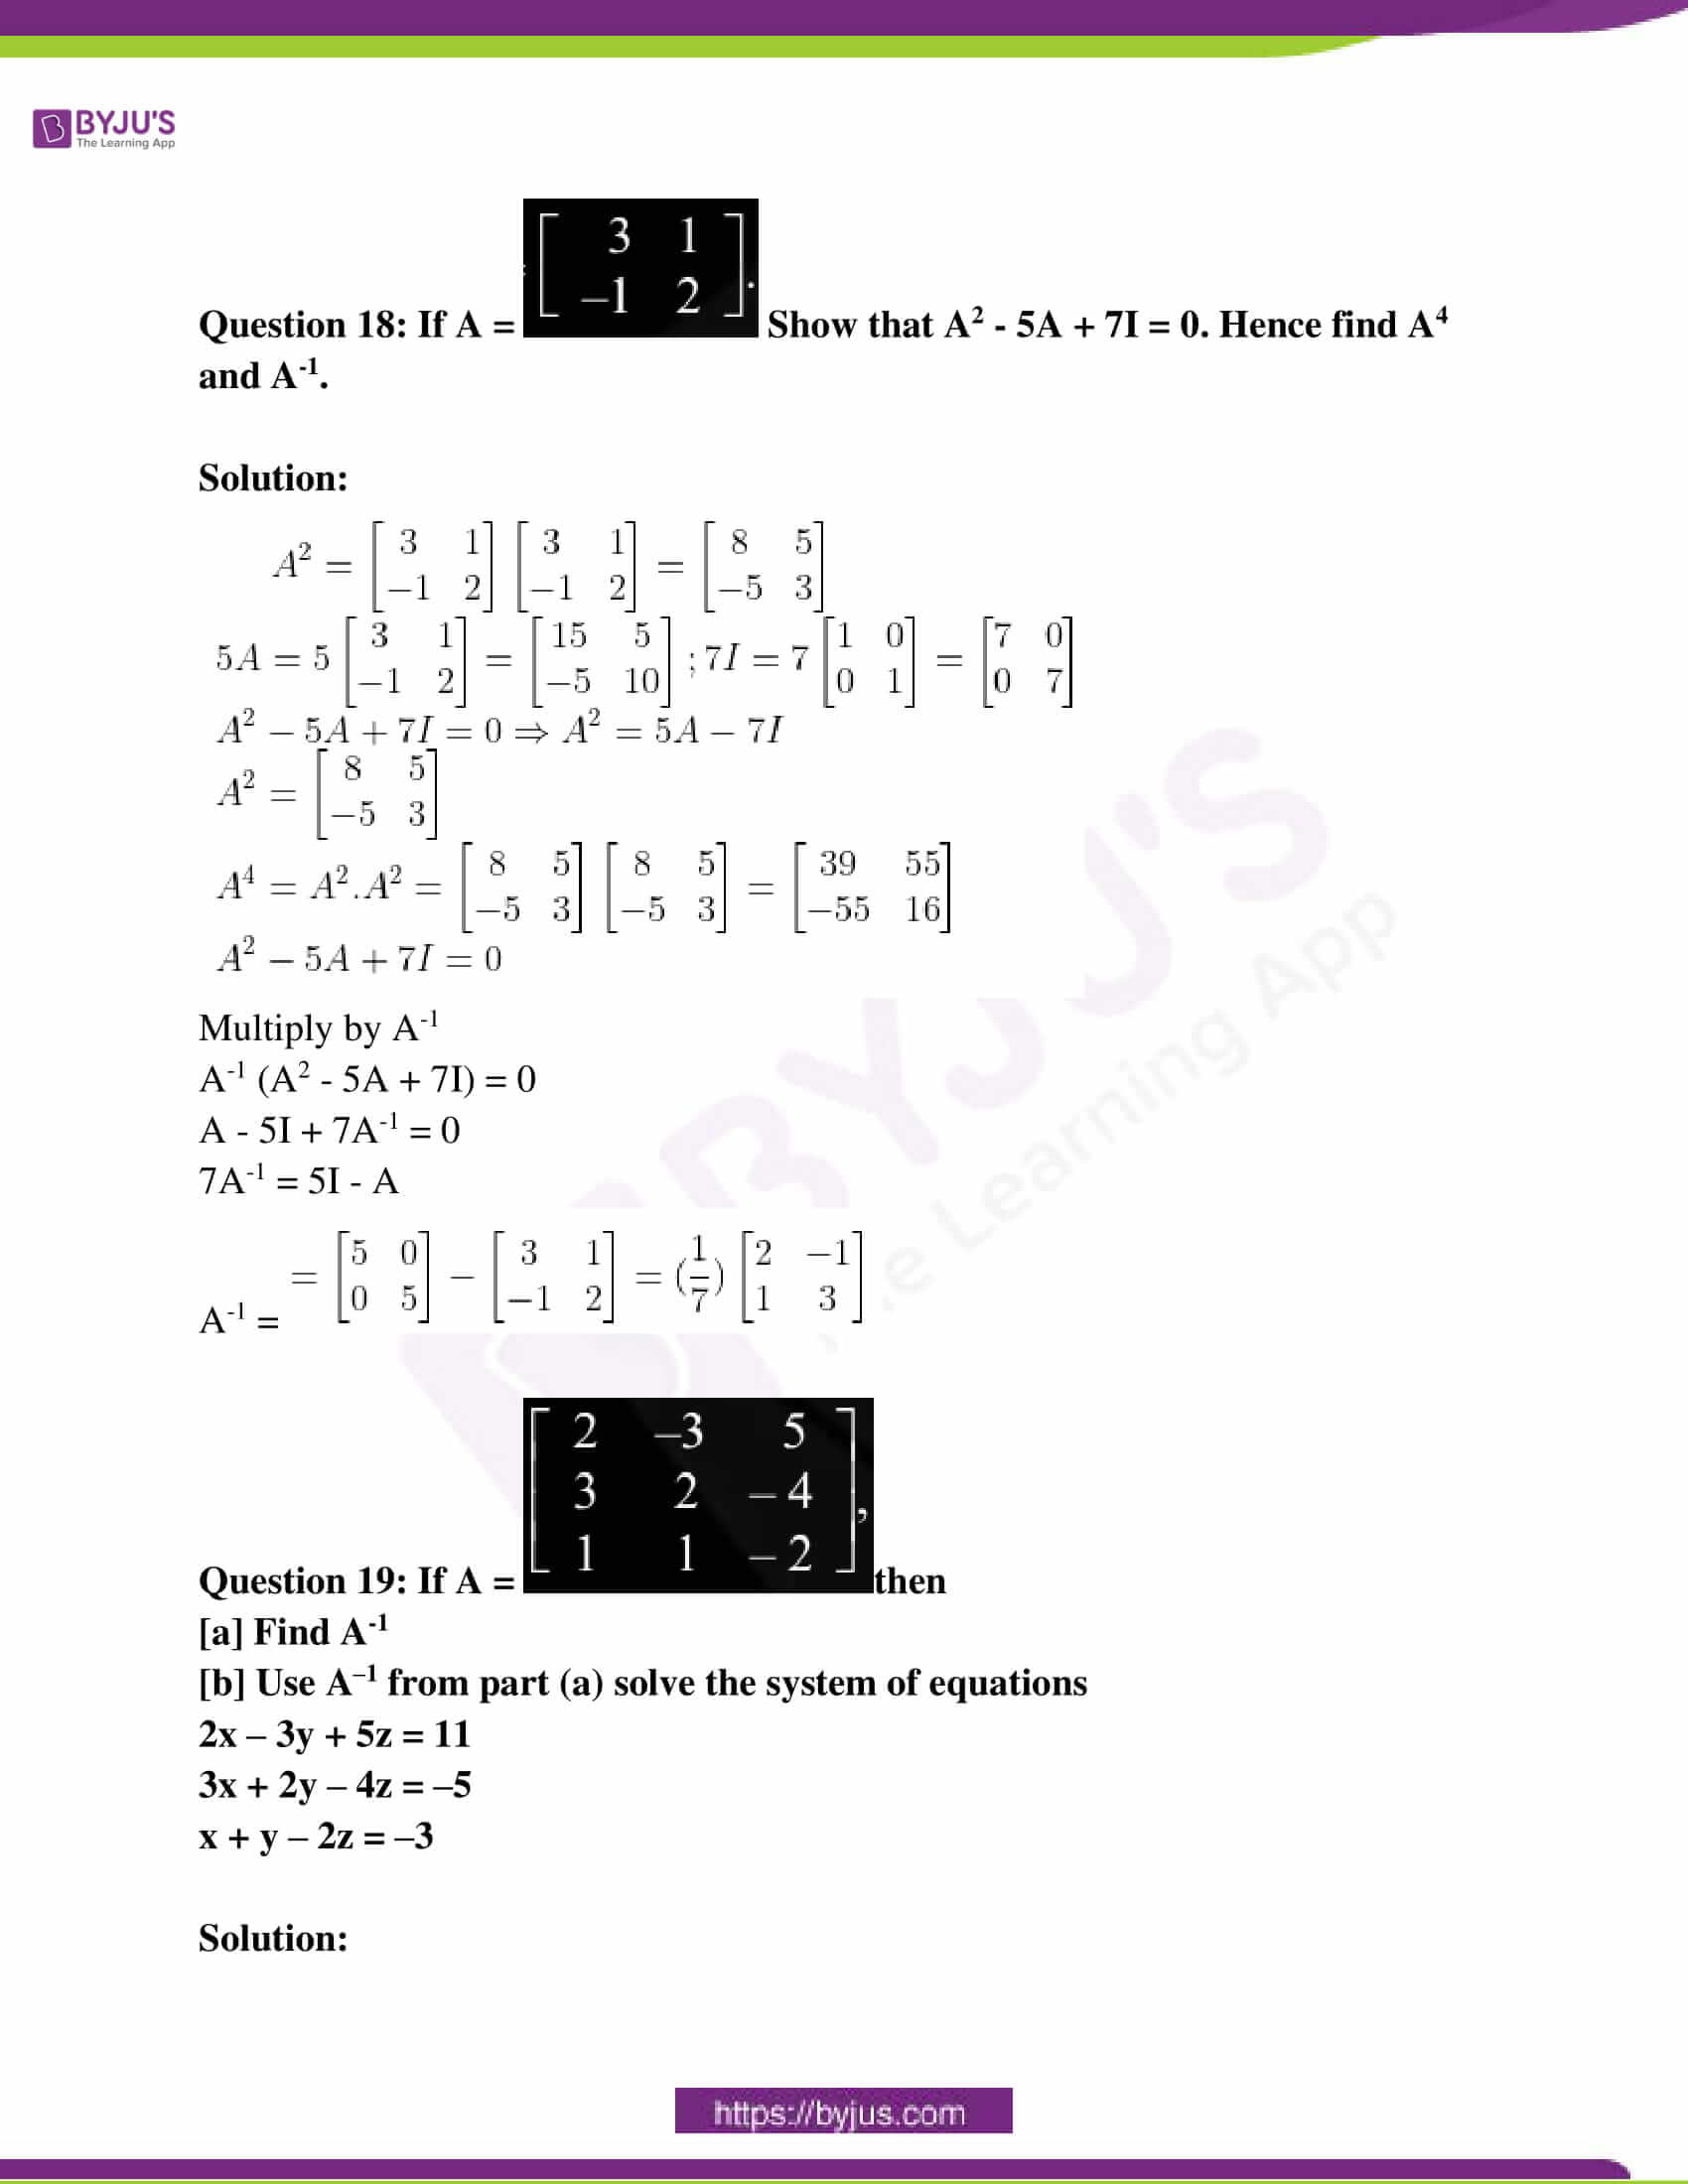 kerala class 12 examination question paper solutions march 2019 14